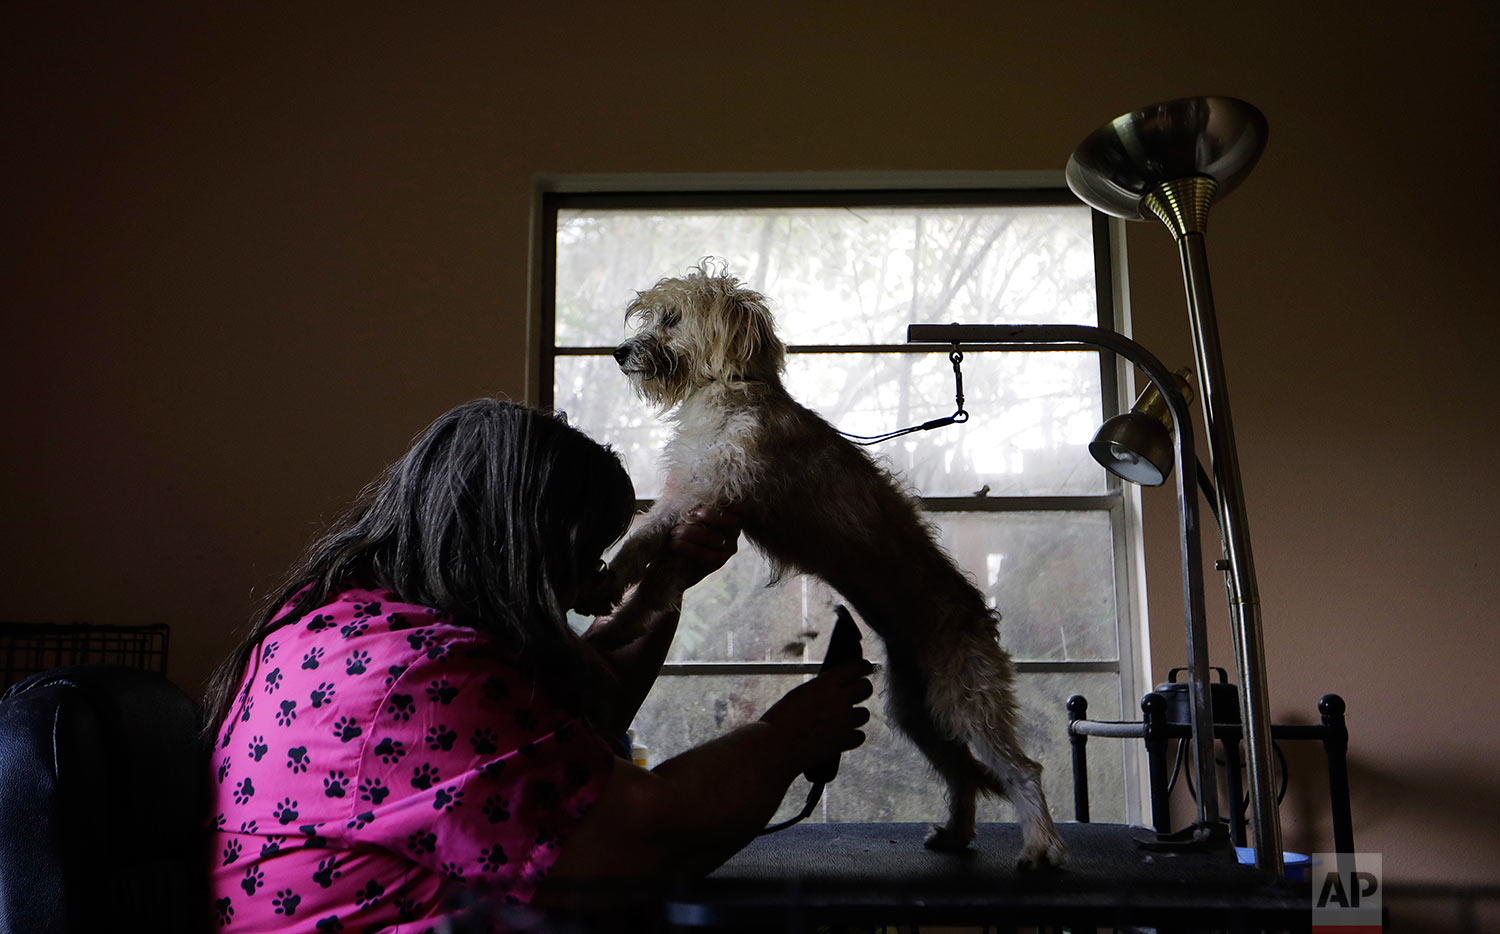 """Lori Cox grooms a dog, rescued during the previous month's Hurricane Harvey, at her home in Beaumont, Texas, Wednesday, Sept. 27, 2017. The region's economy is tied to the petroleum industry more than in any other place in America: the concentration of people here employed by refineries is 81 times higher than the rest of the country. """"For all these good jobs, we have to pay an environmental price. It's the trade-off. It's almost like we made this deal with the devil,"""" said Cox. (AP Photo/David Goldman)"""